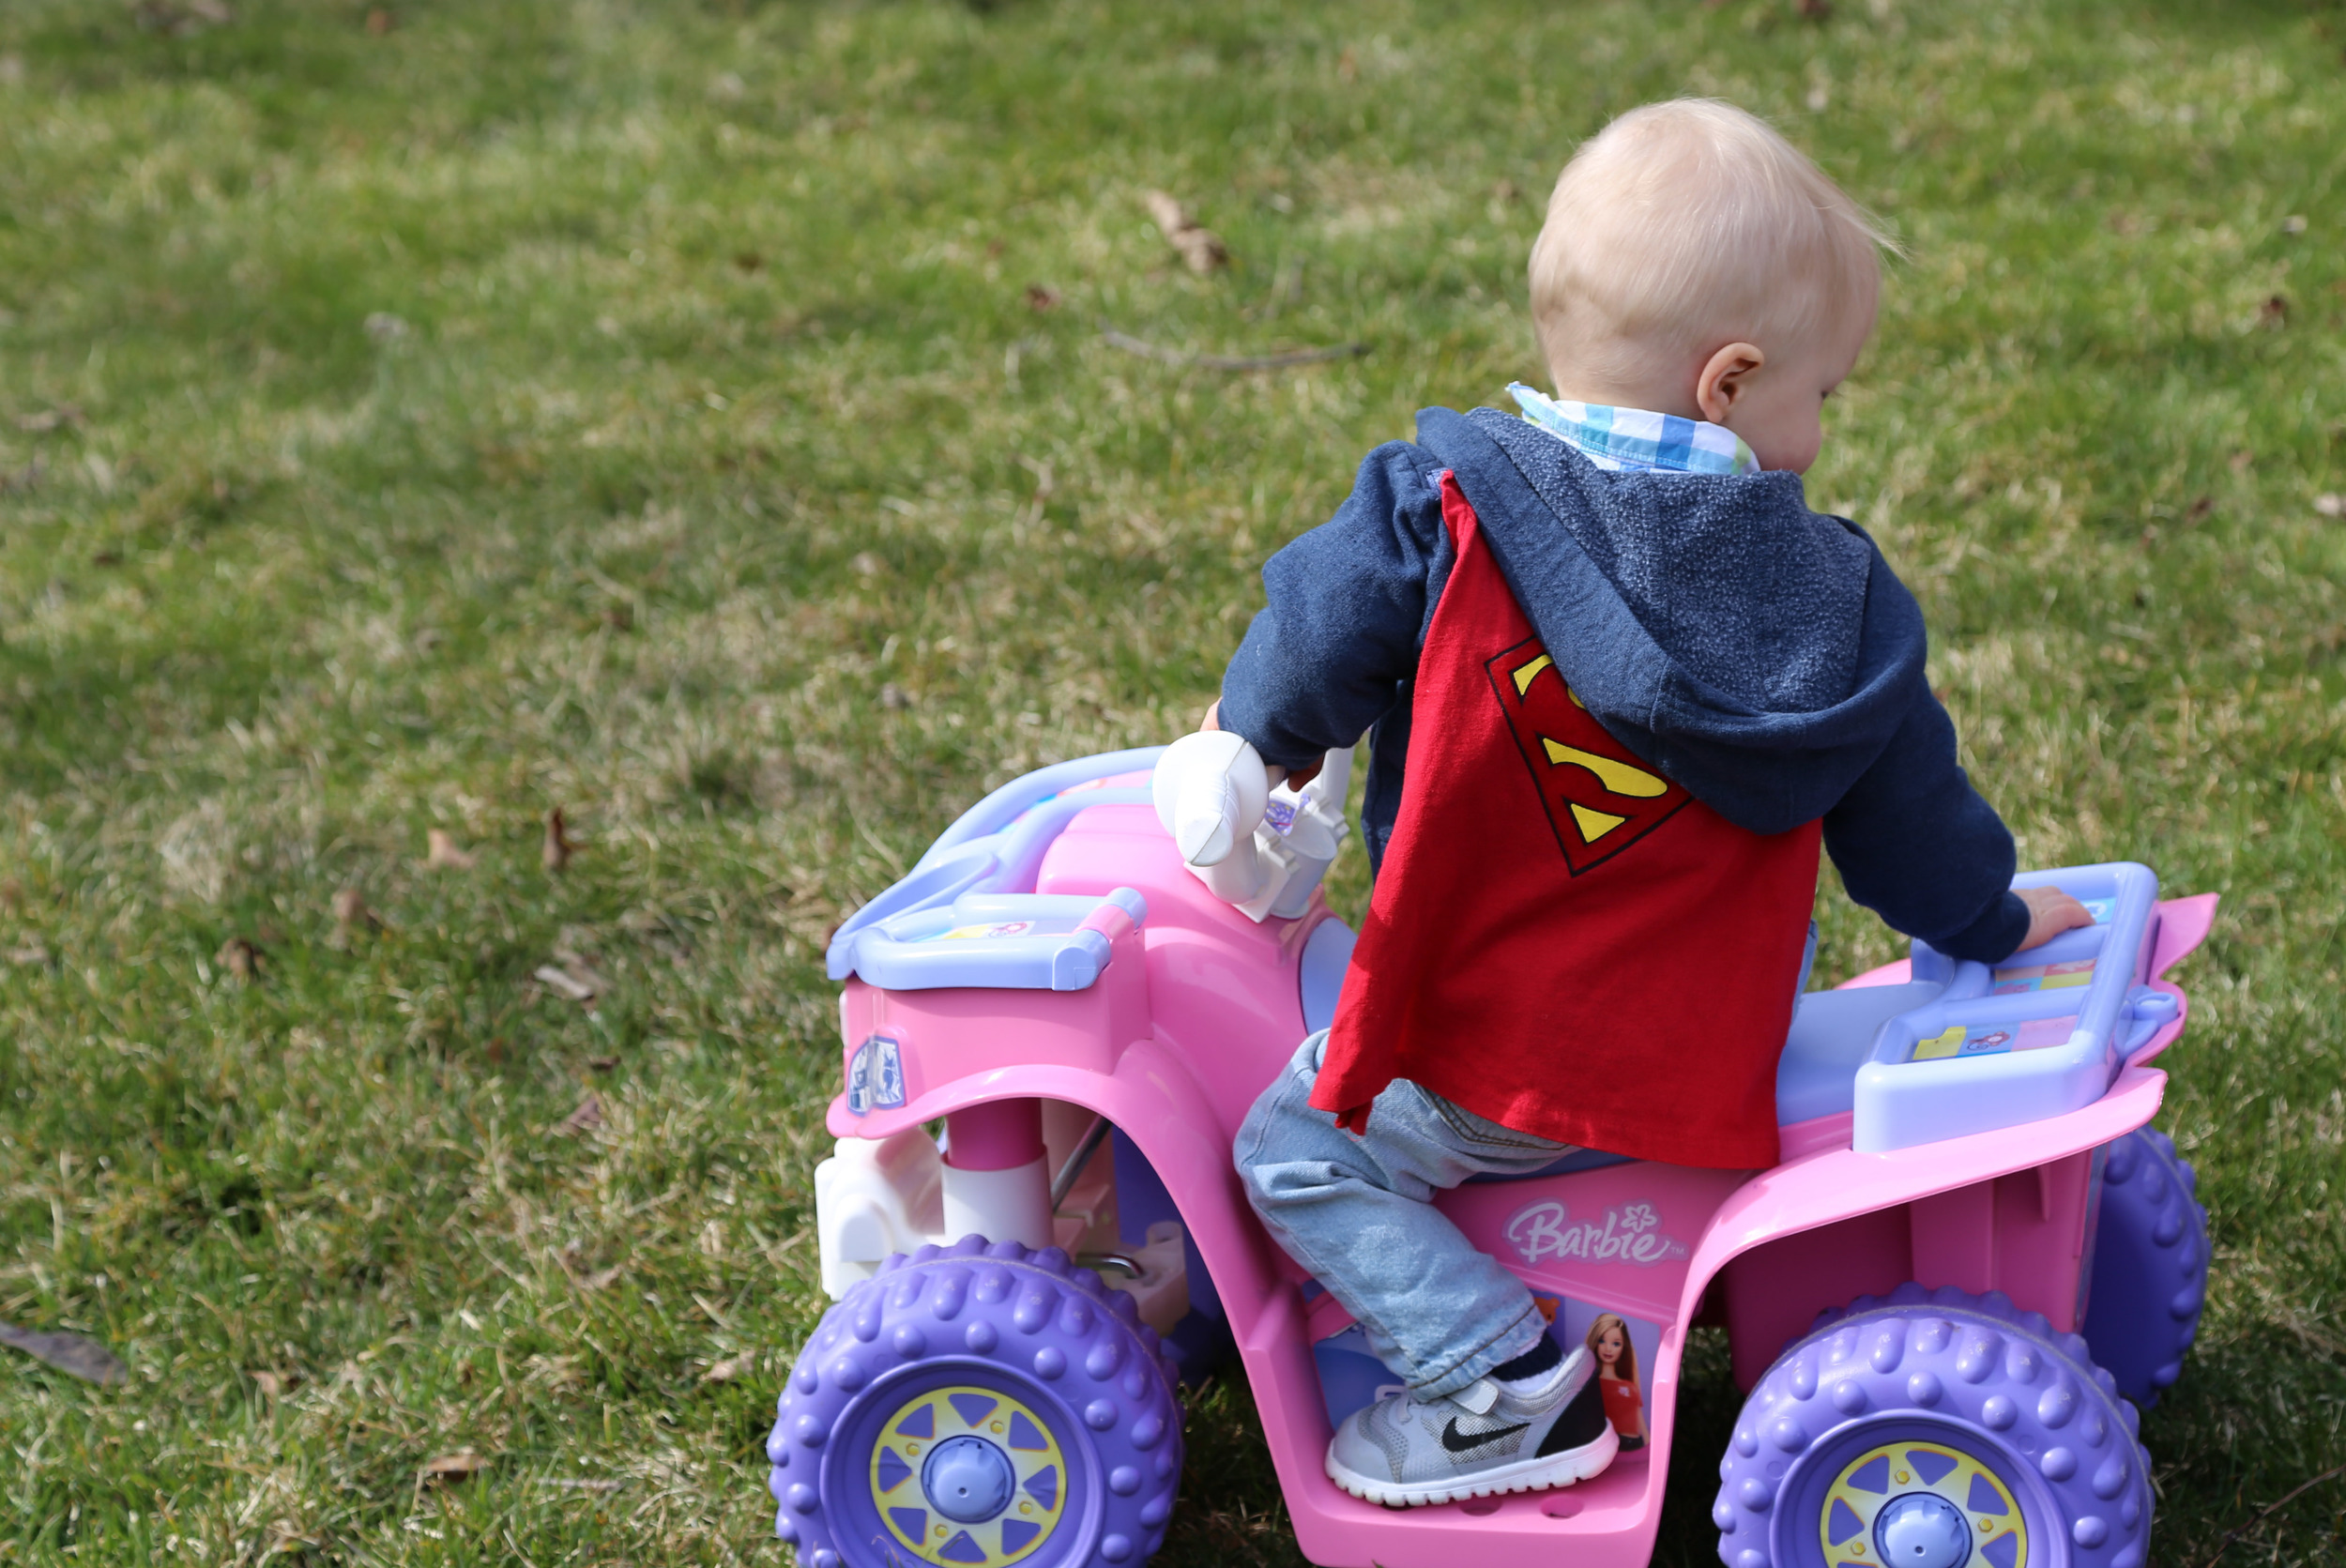 Ya know, Superman always rides in his cousin's Barbie Car!